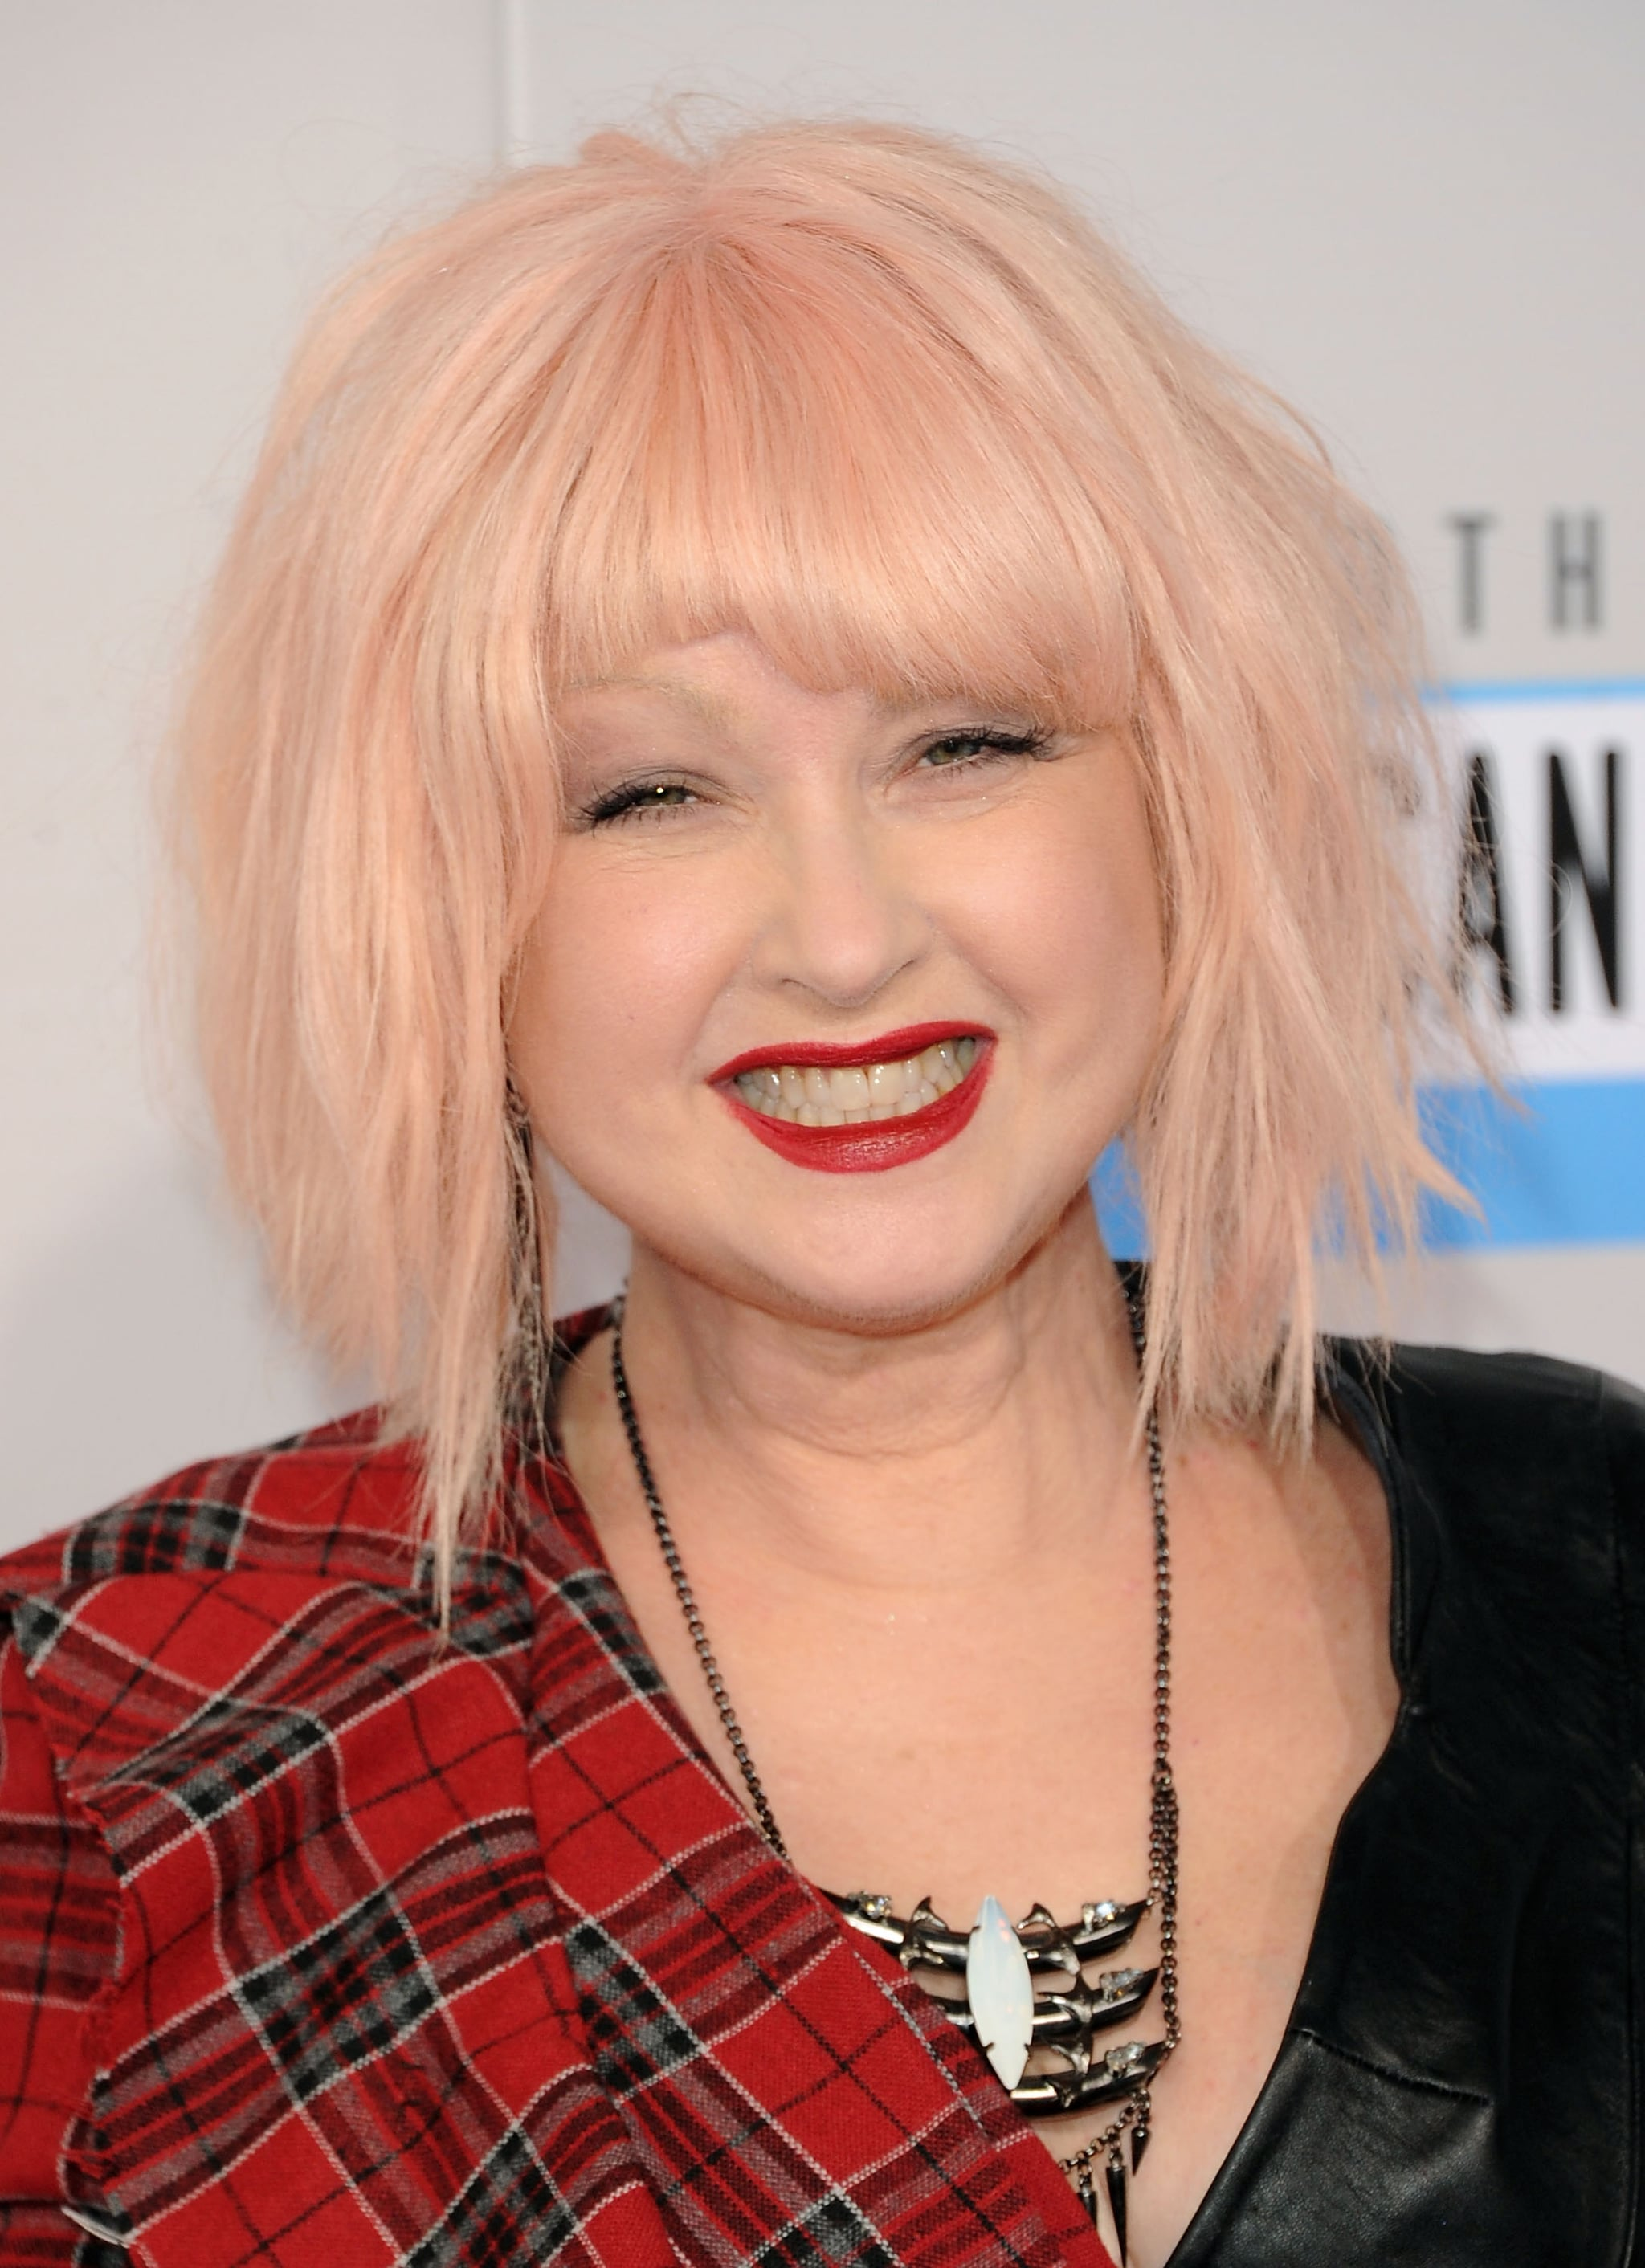 """Cyndi Lauper told Metro Weekly in 2002 that she makes a point to vouch for her sister Elen: """"My sister is a lesbian, and she's one of the most fantastic people I know. It's a family issue. If you can't vouch for people in your own family, who are you going to vouch for?"""""""